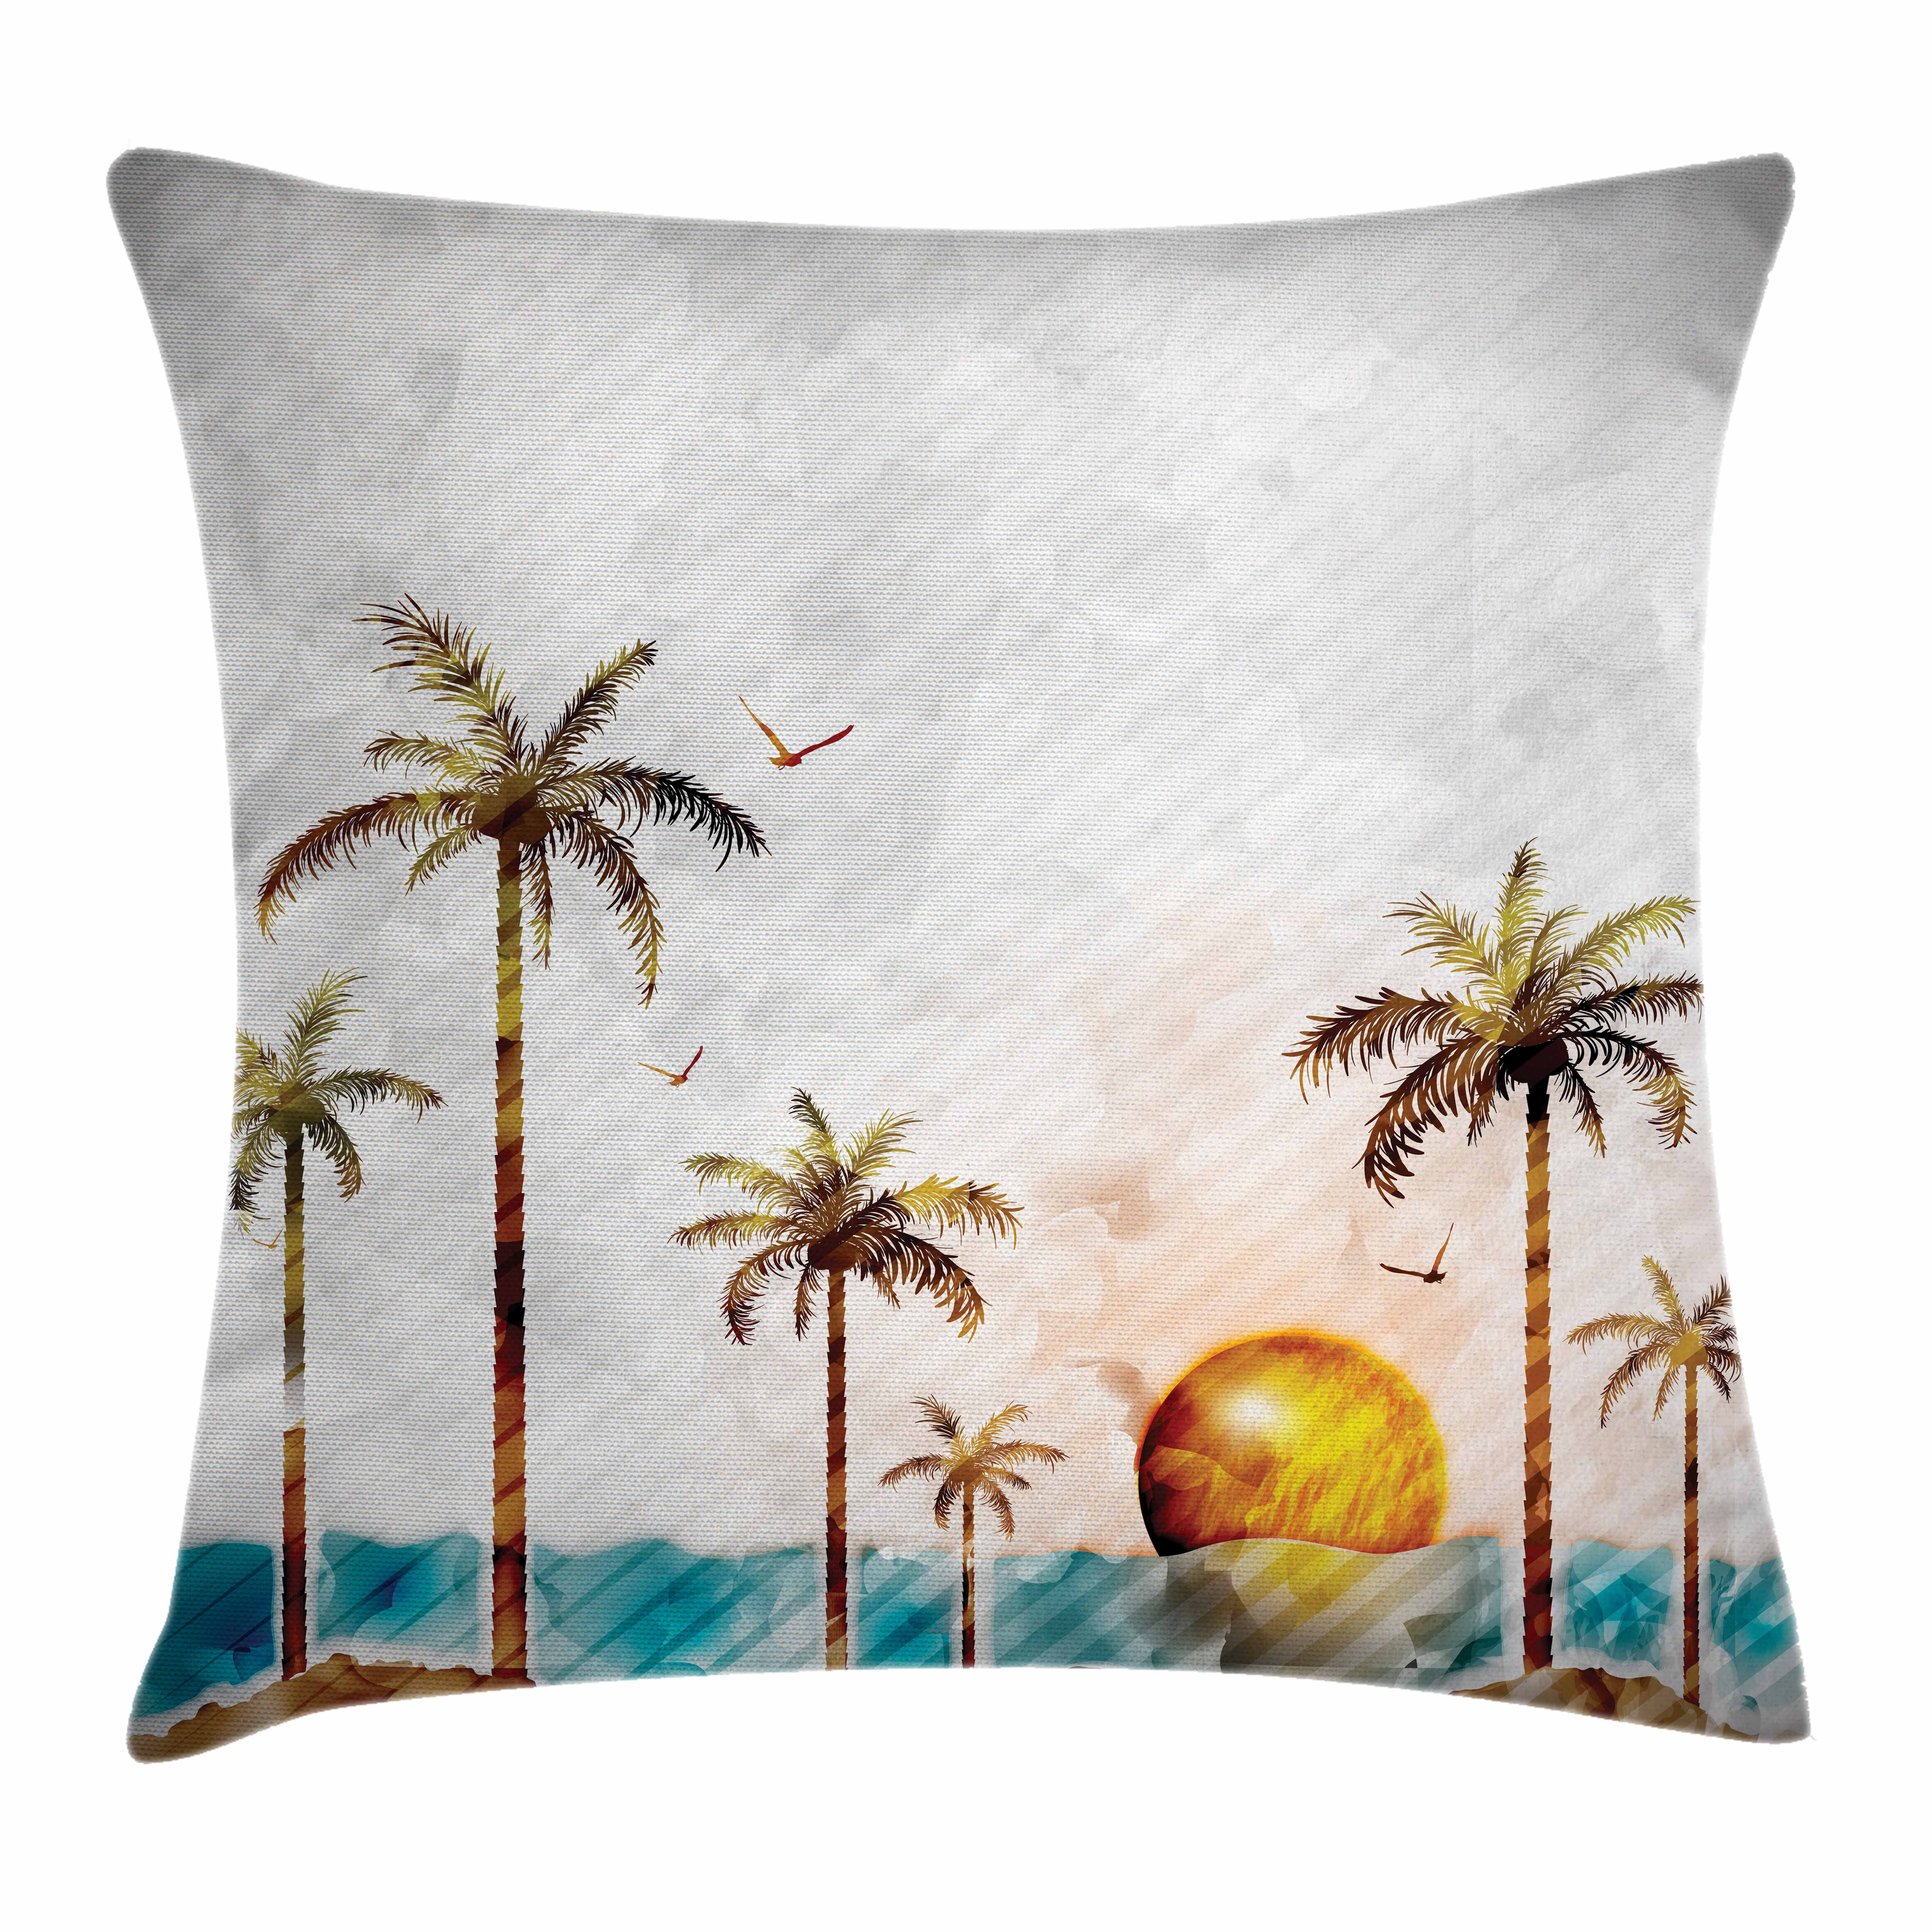 Island Throw Pillow Cushion Cover, Tropical Landscape in Watercolor Style Palm Trees Ocean Waves Sunset Beach Picture, Decorative Square Accent Pillow Case, 16 X 16 Inches, Multicolor, by Ambesonne